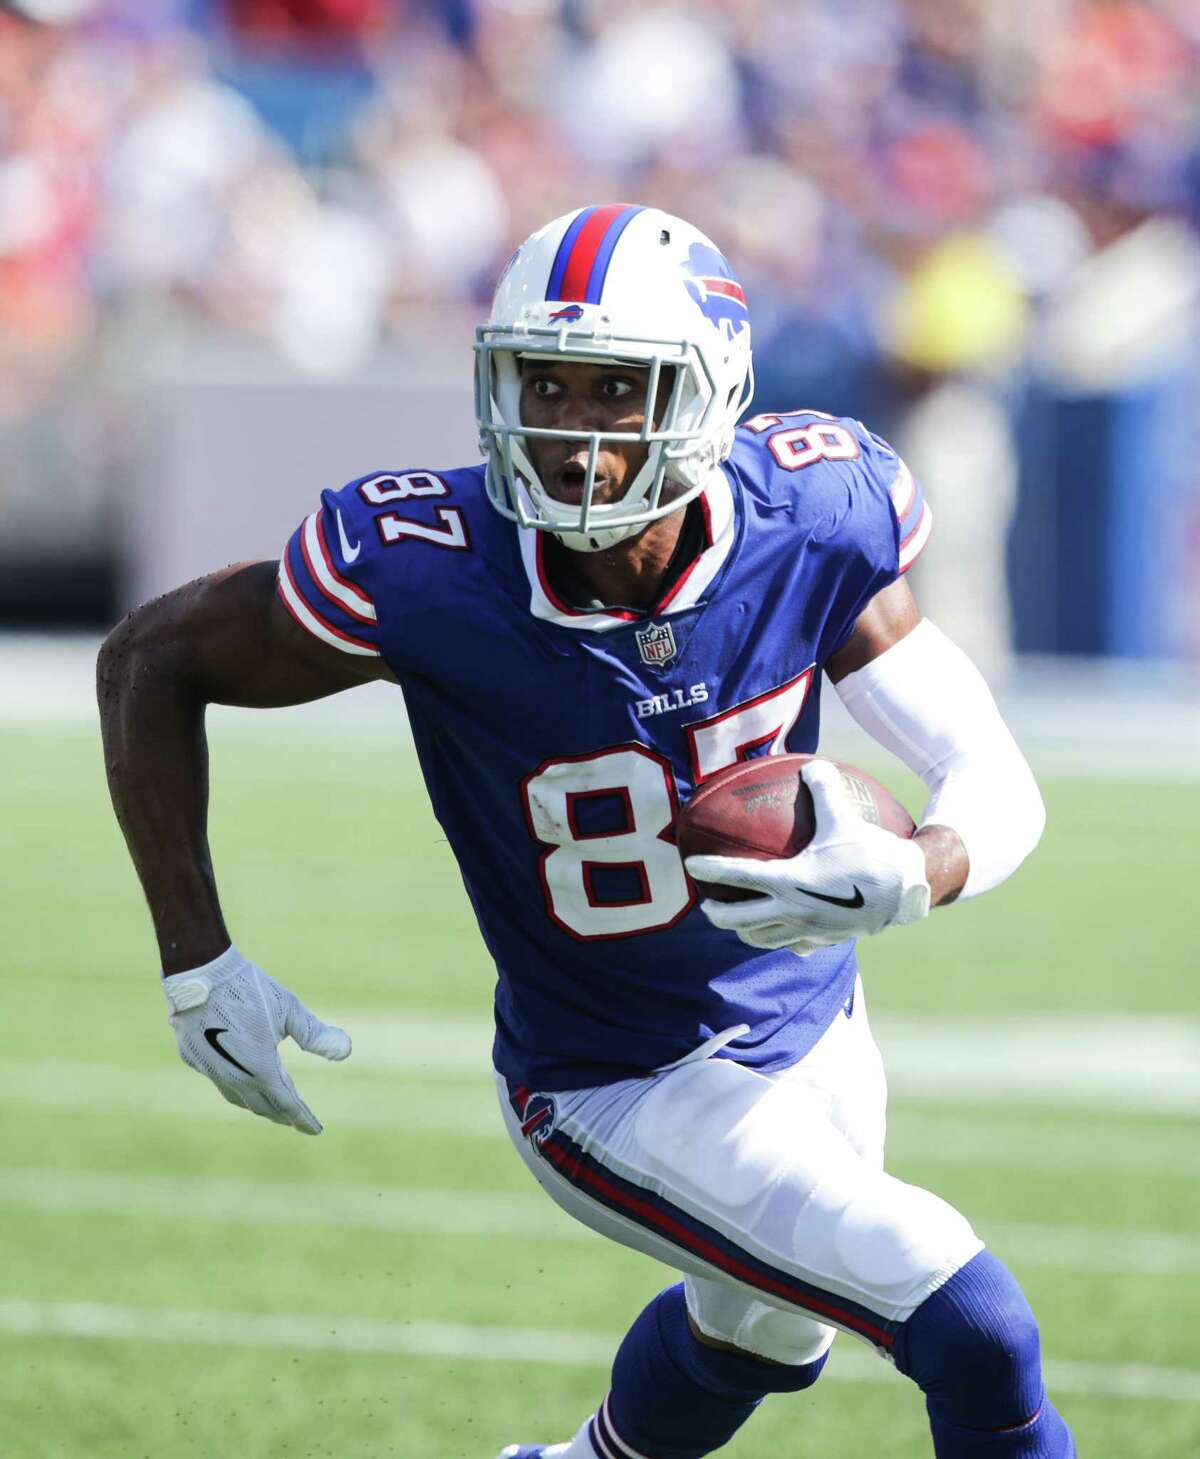 ORCHARD PARK, NY - SEPTEMBER 24: Jordan Matthews #87 of the Buffalo Bills runs the ball during an NFL game against the Denver Broncos on September 24, 2017 at New Era Field in Orchard Park, New York. (Photo by Brett Carlsen/Getty Images) ORG XMIT: 700070632